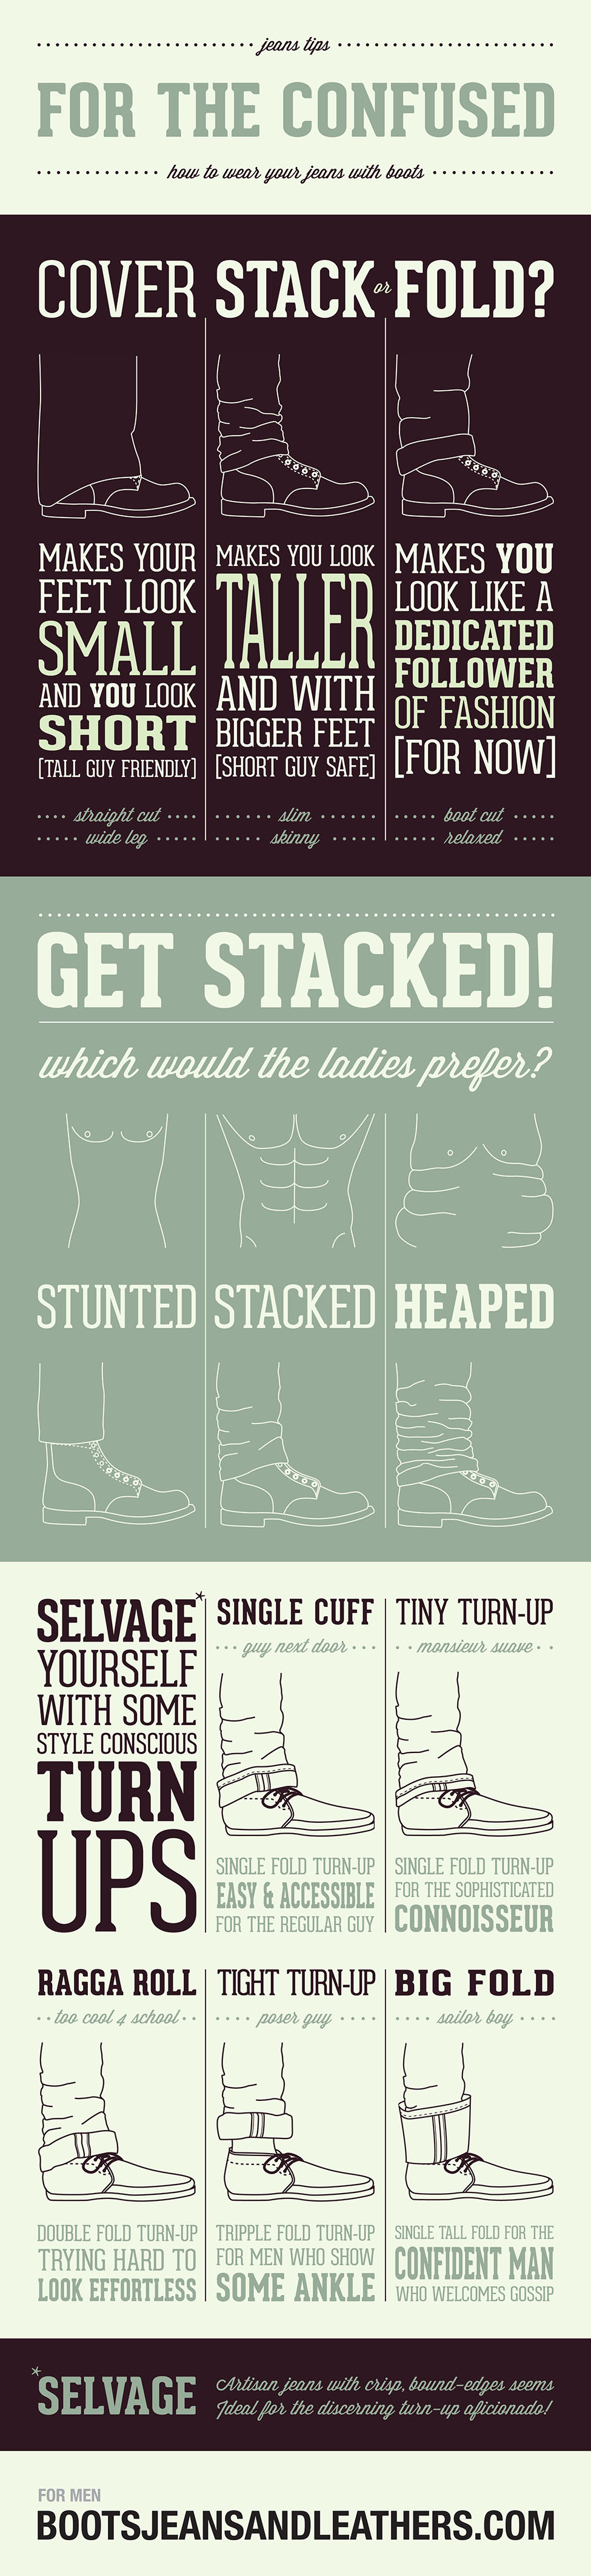 How to wear jeans with boots and do a good turn up or coff to suit you, your loo